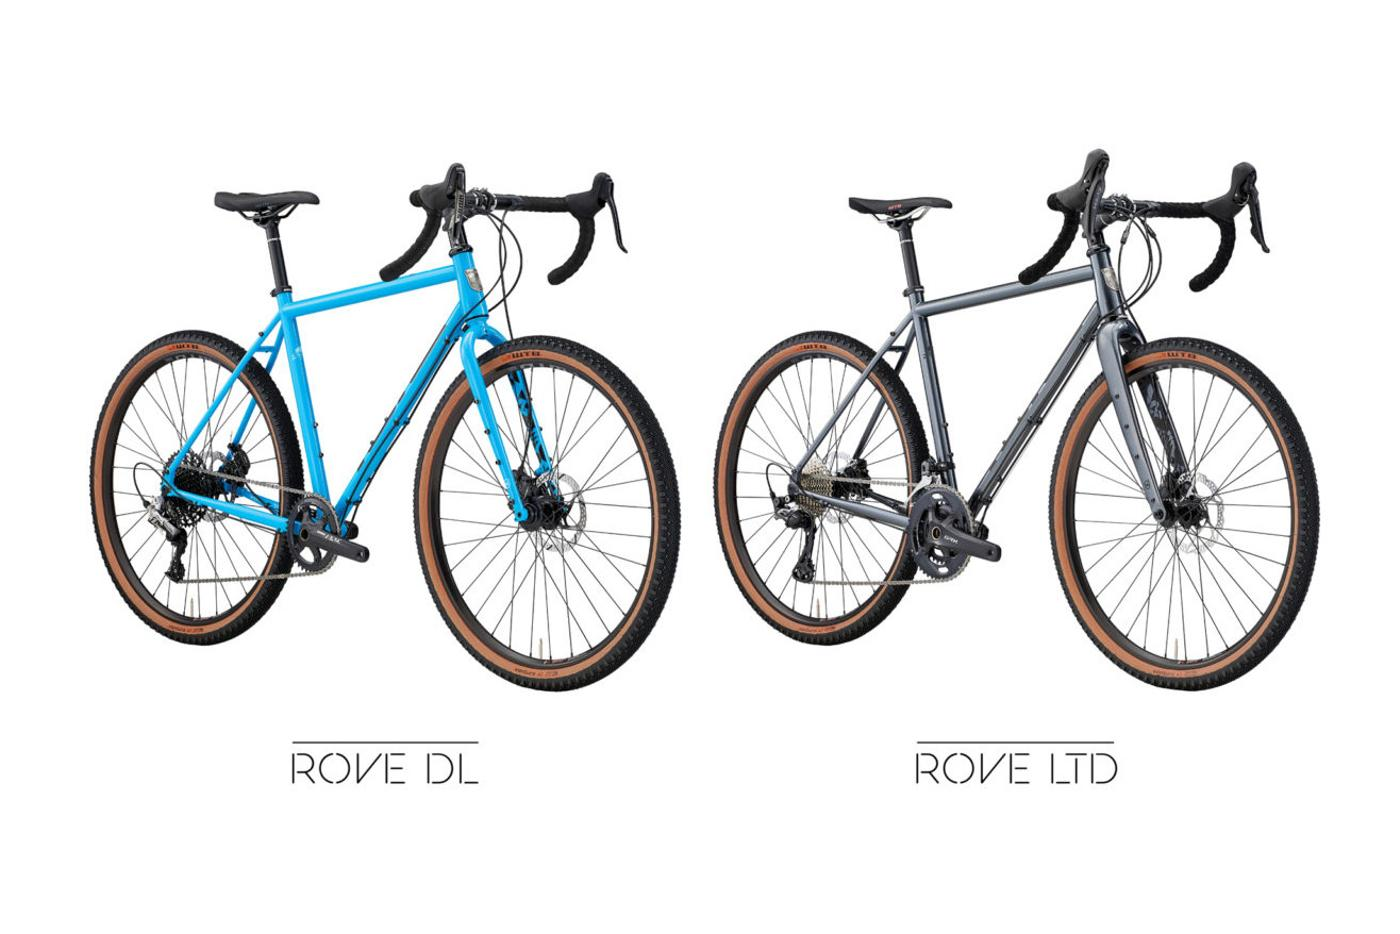 Kona's 2021 Steel Rove DL and LTD Models Are Here!